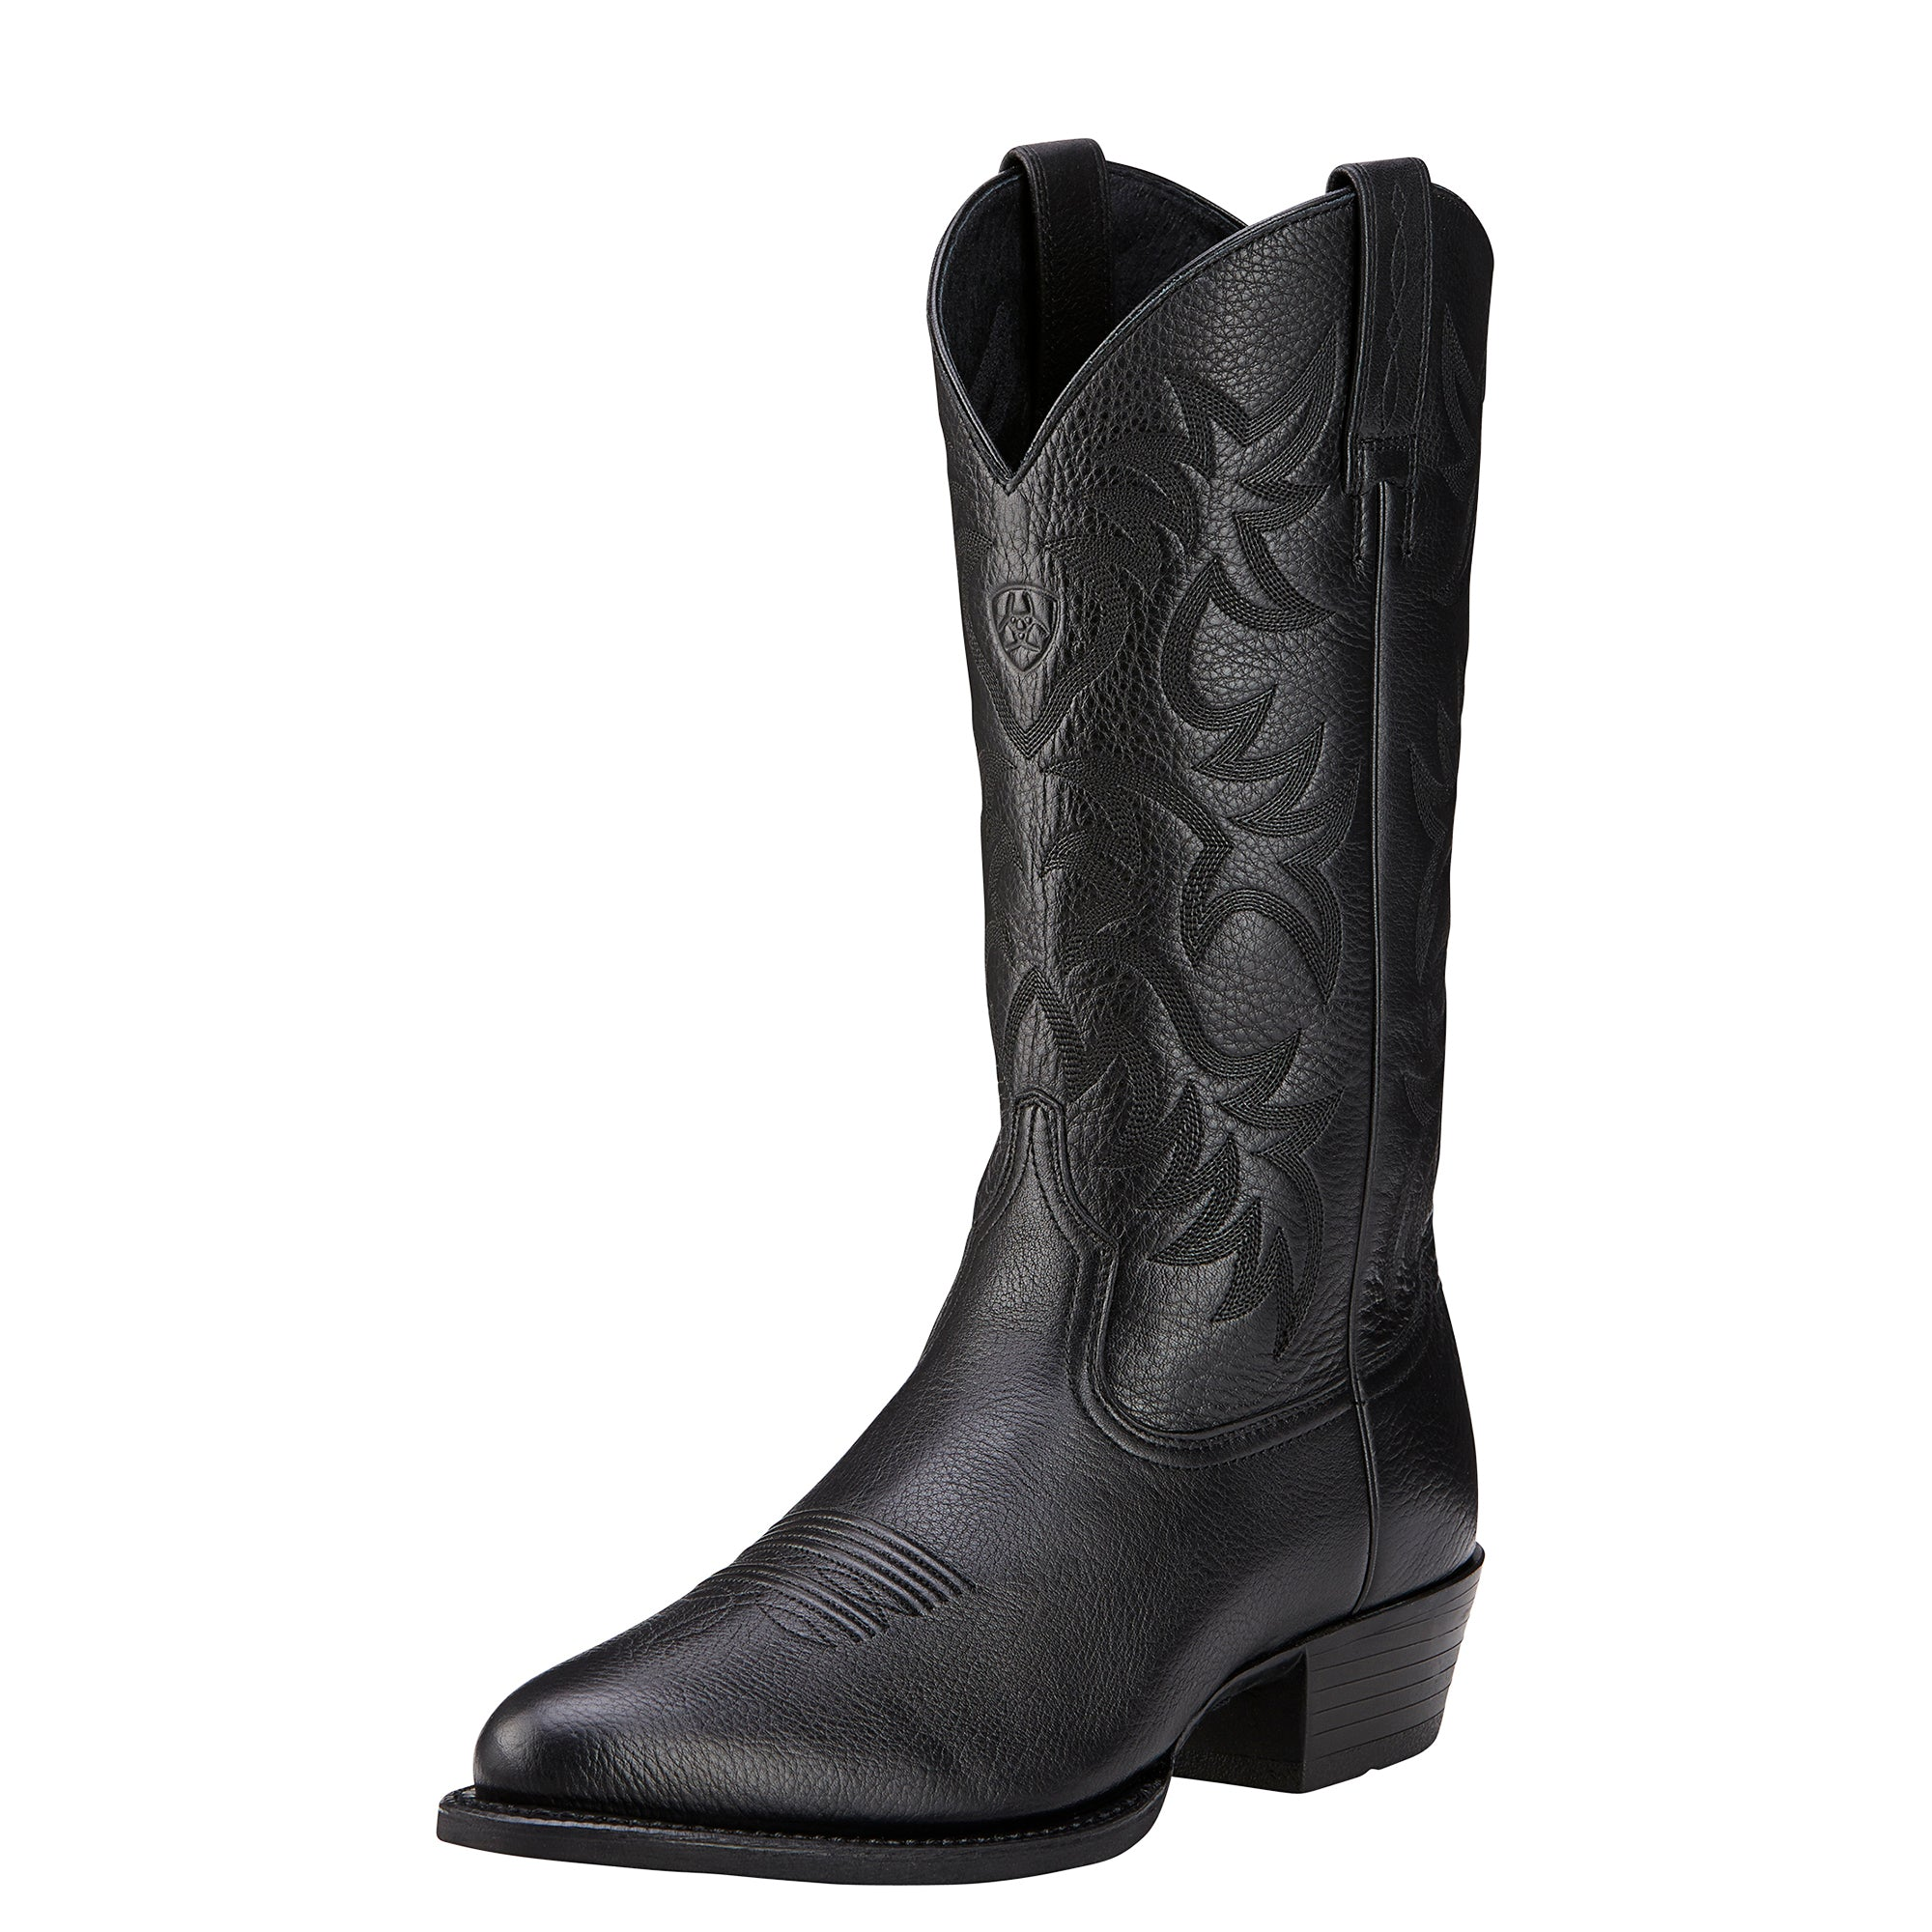 Ariat Heritage Men's Western Round Toe Boots